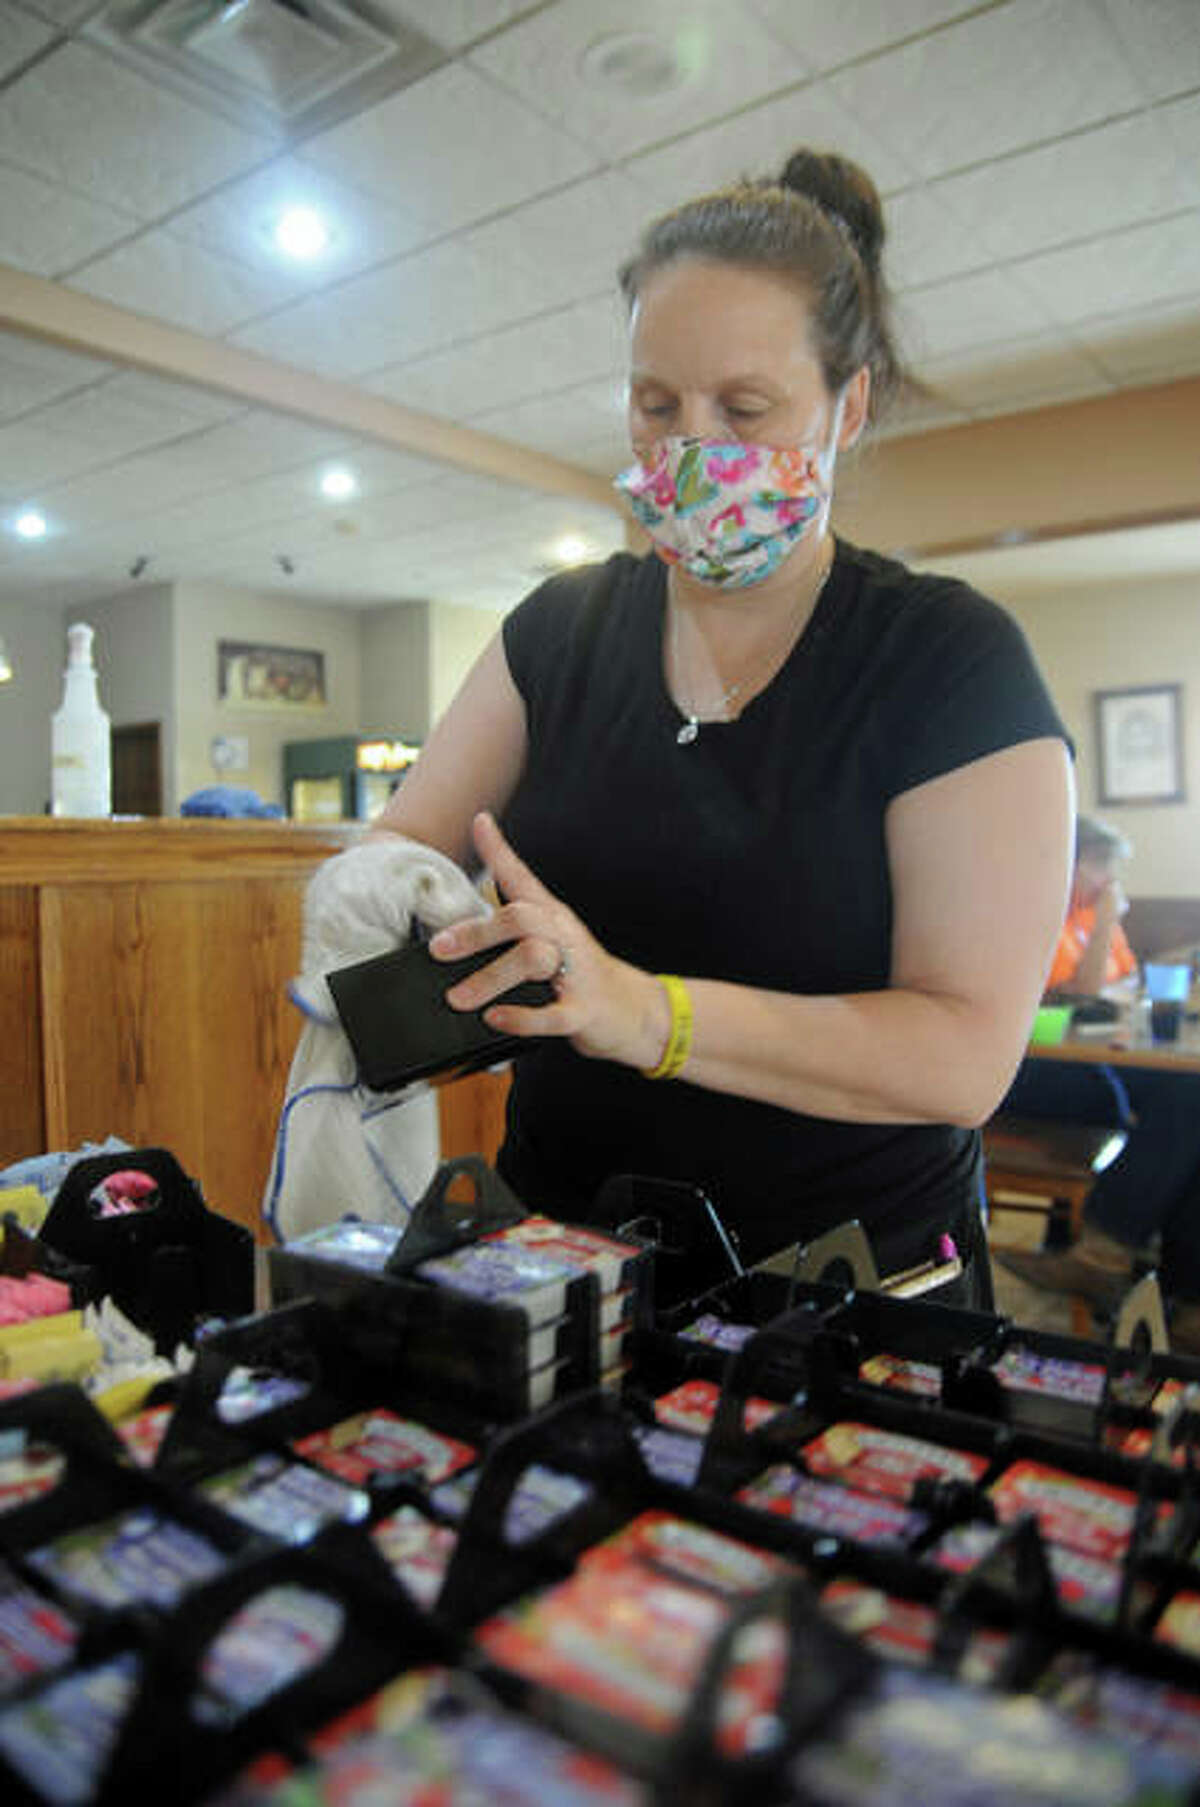 Jeni Nape, a server at the Olive Branch Cafe in Jerseyville, sanitizes condiment holders that were on customers' tables during the noon lunch rush on Saturday. Pandemic concerns have added a lot of time to wait staff's schedules, she said.